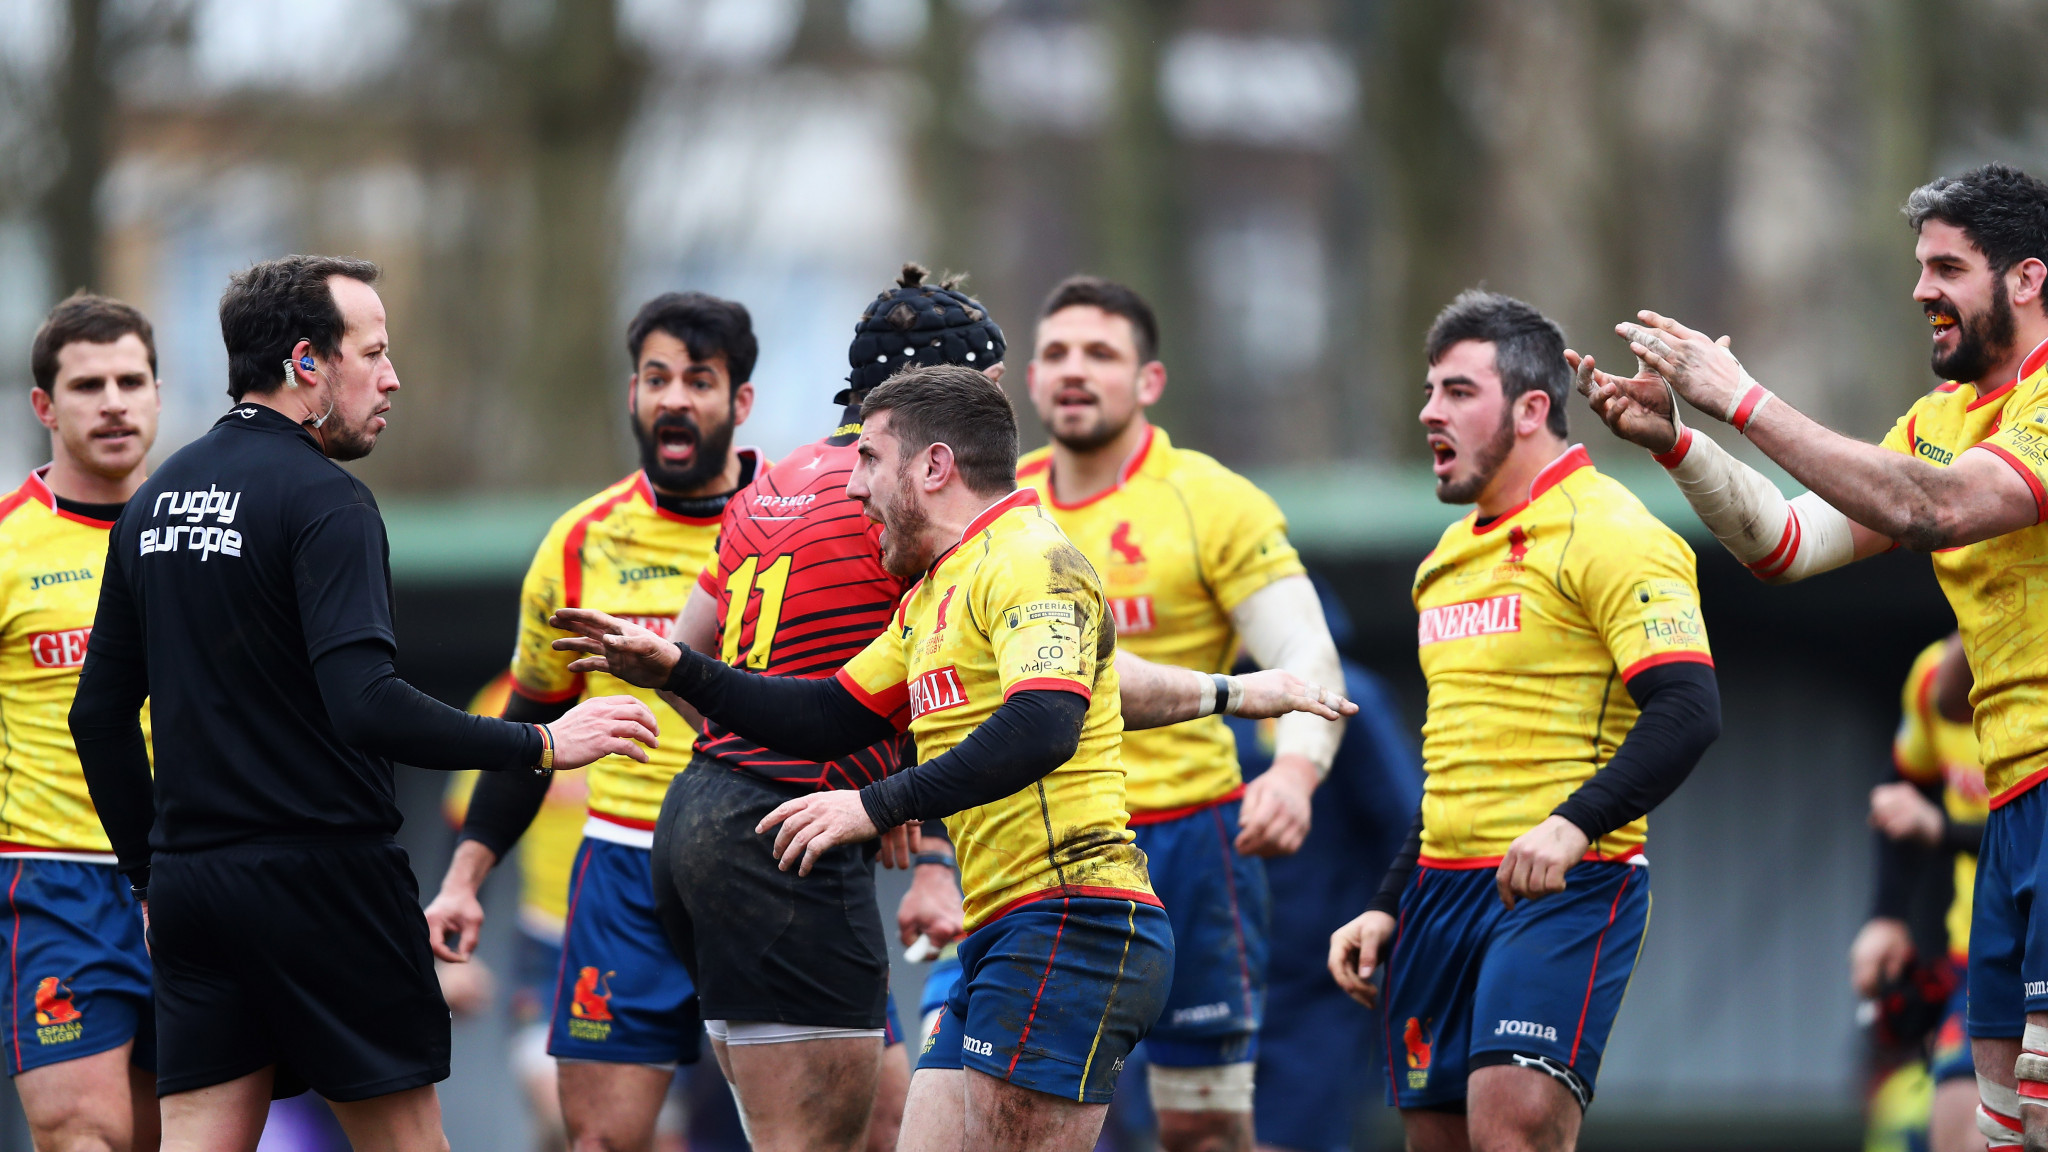 Spanish Rugby Federation call for controversial Belgium match to be replayed as formal complaint lodged